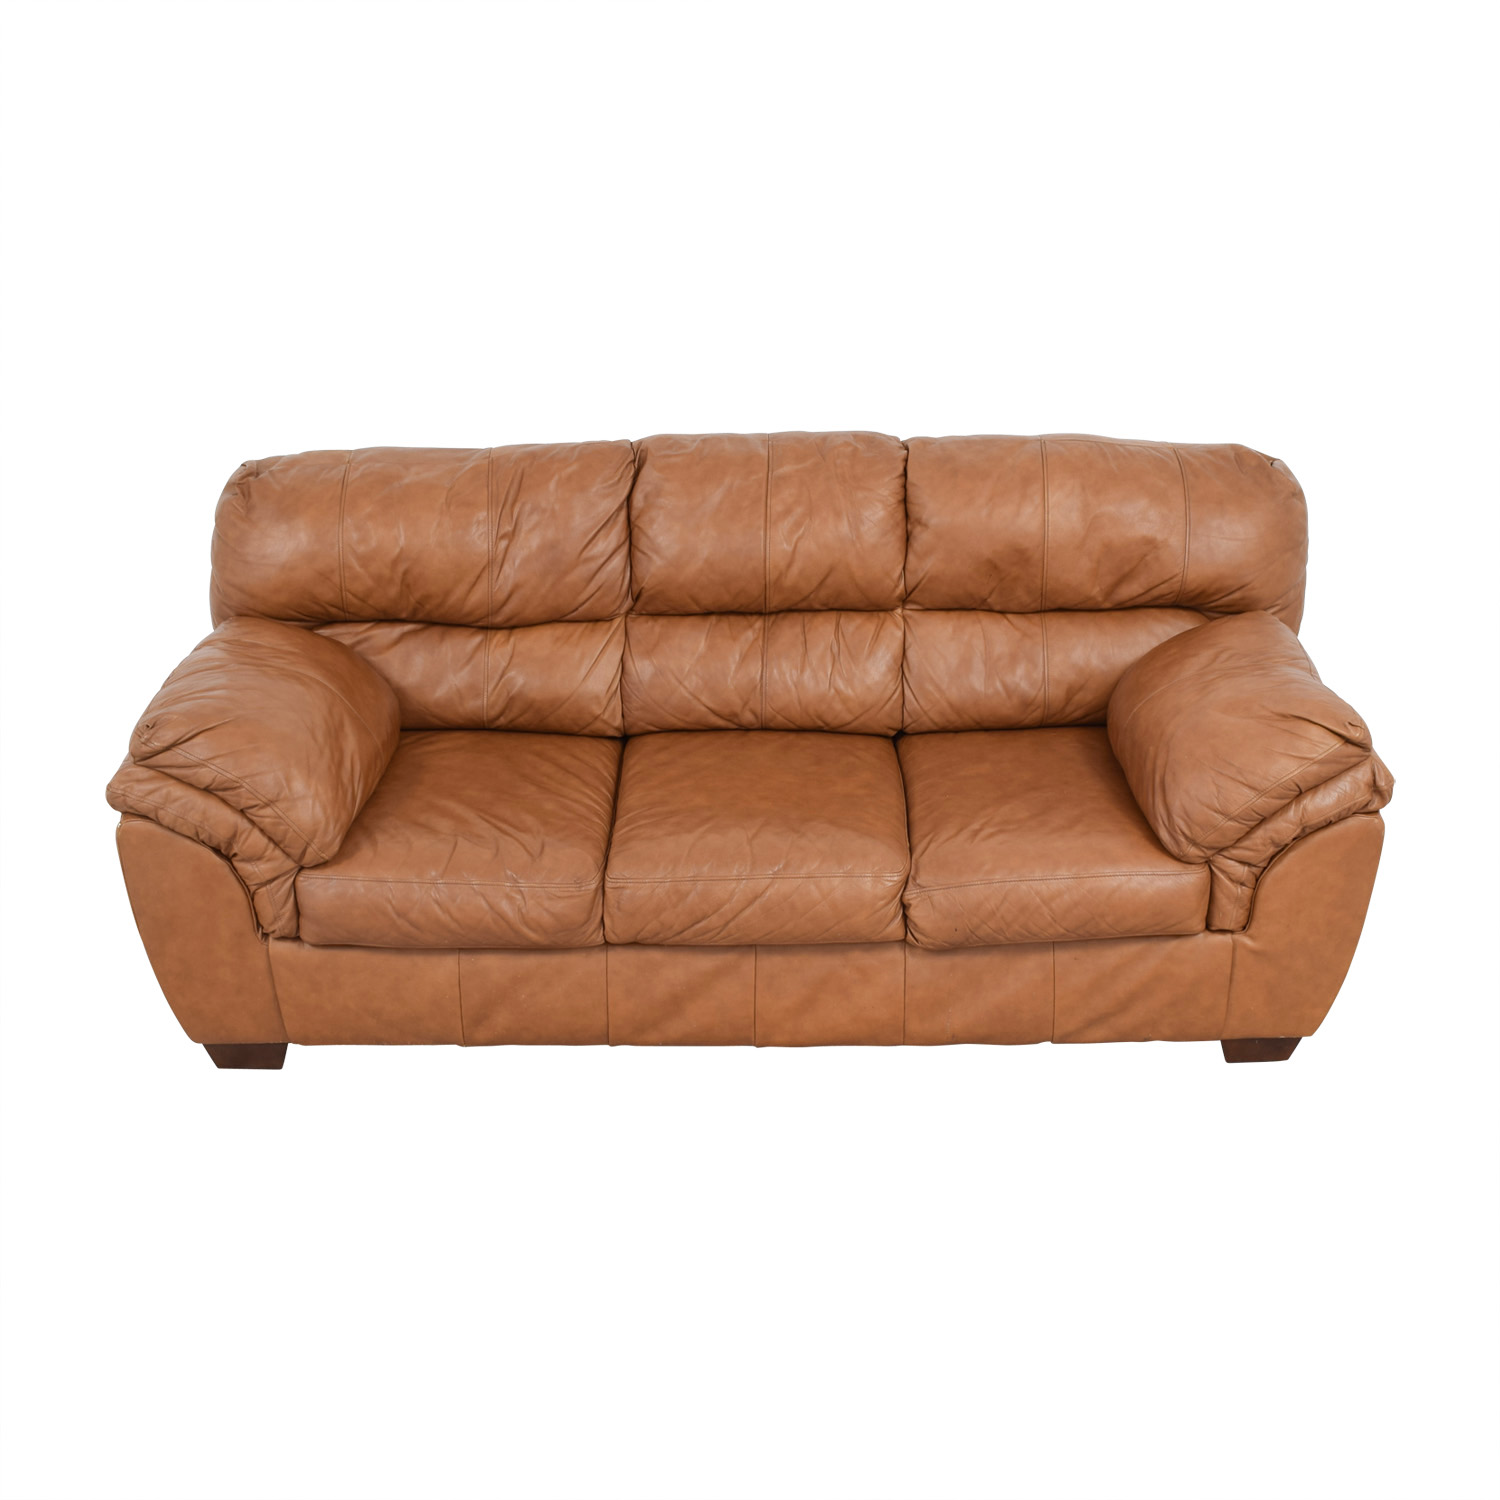 Sofa Leather Workshop: Classic Sofas: Used Classic Sofas For Sale